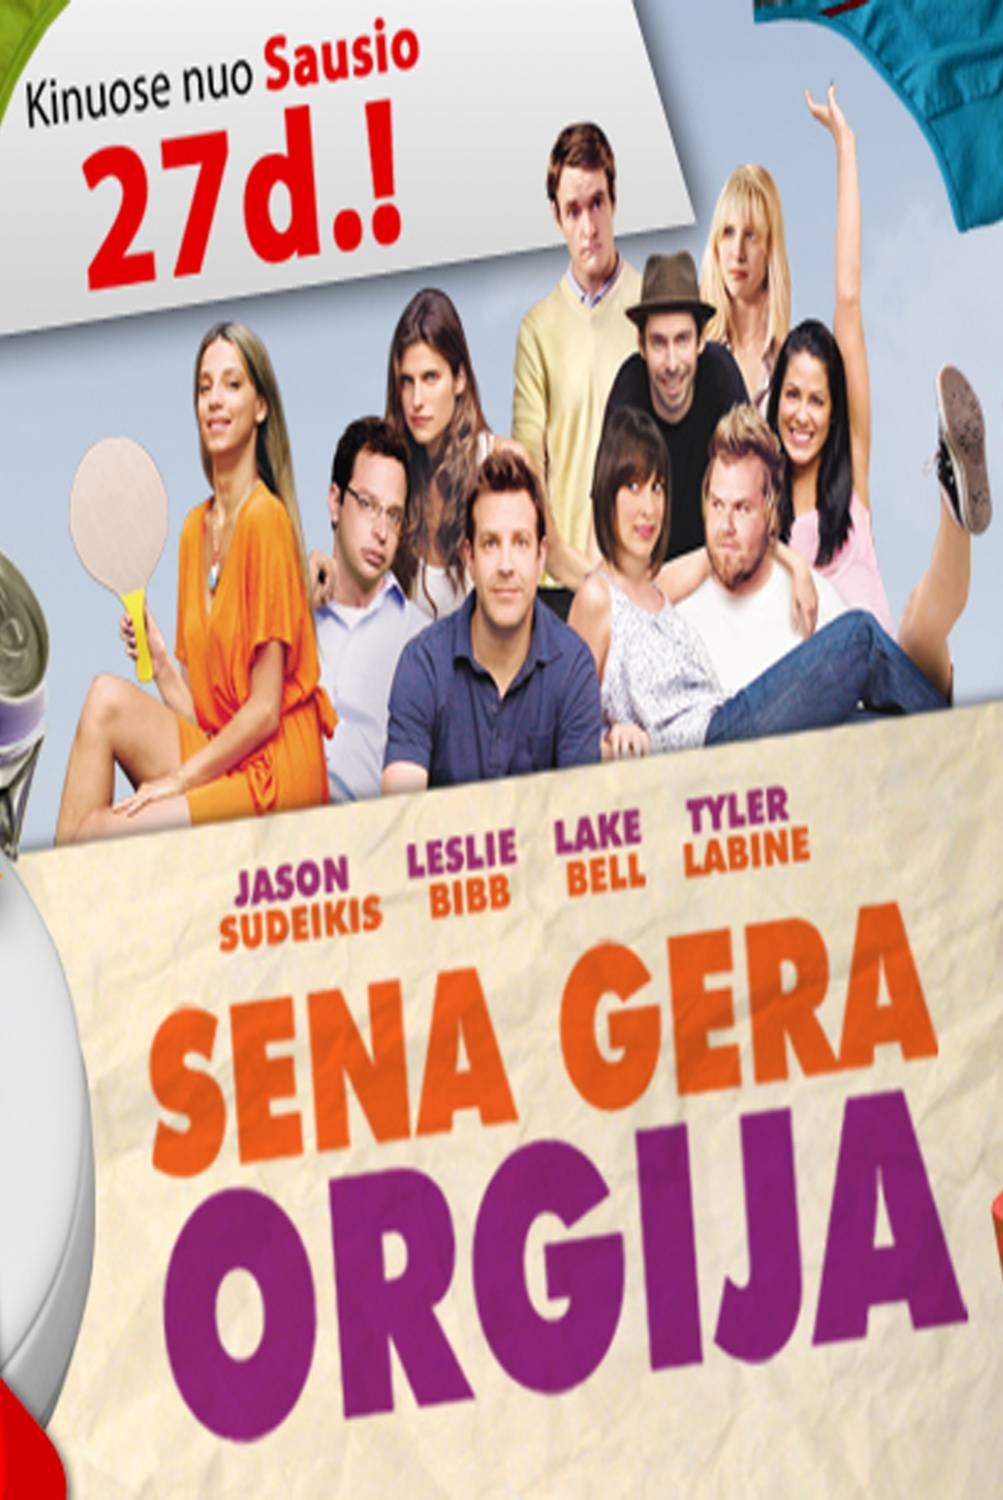 SENA GERA ORGIJA / A GOOD OLD FASHIONED ORGY